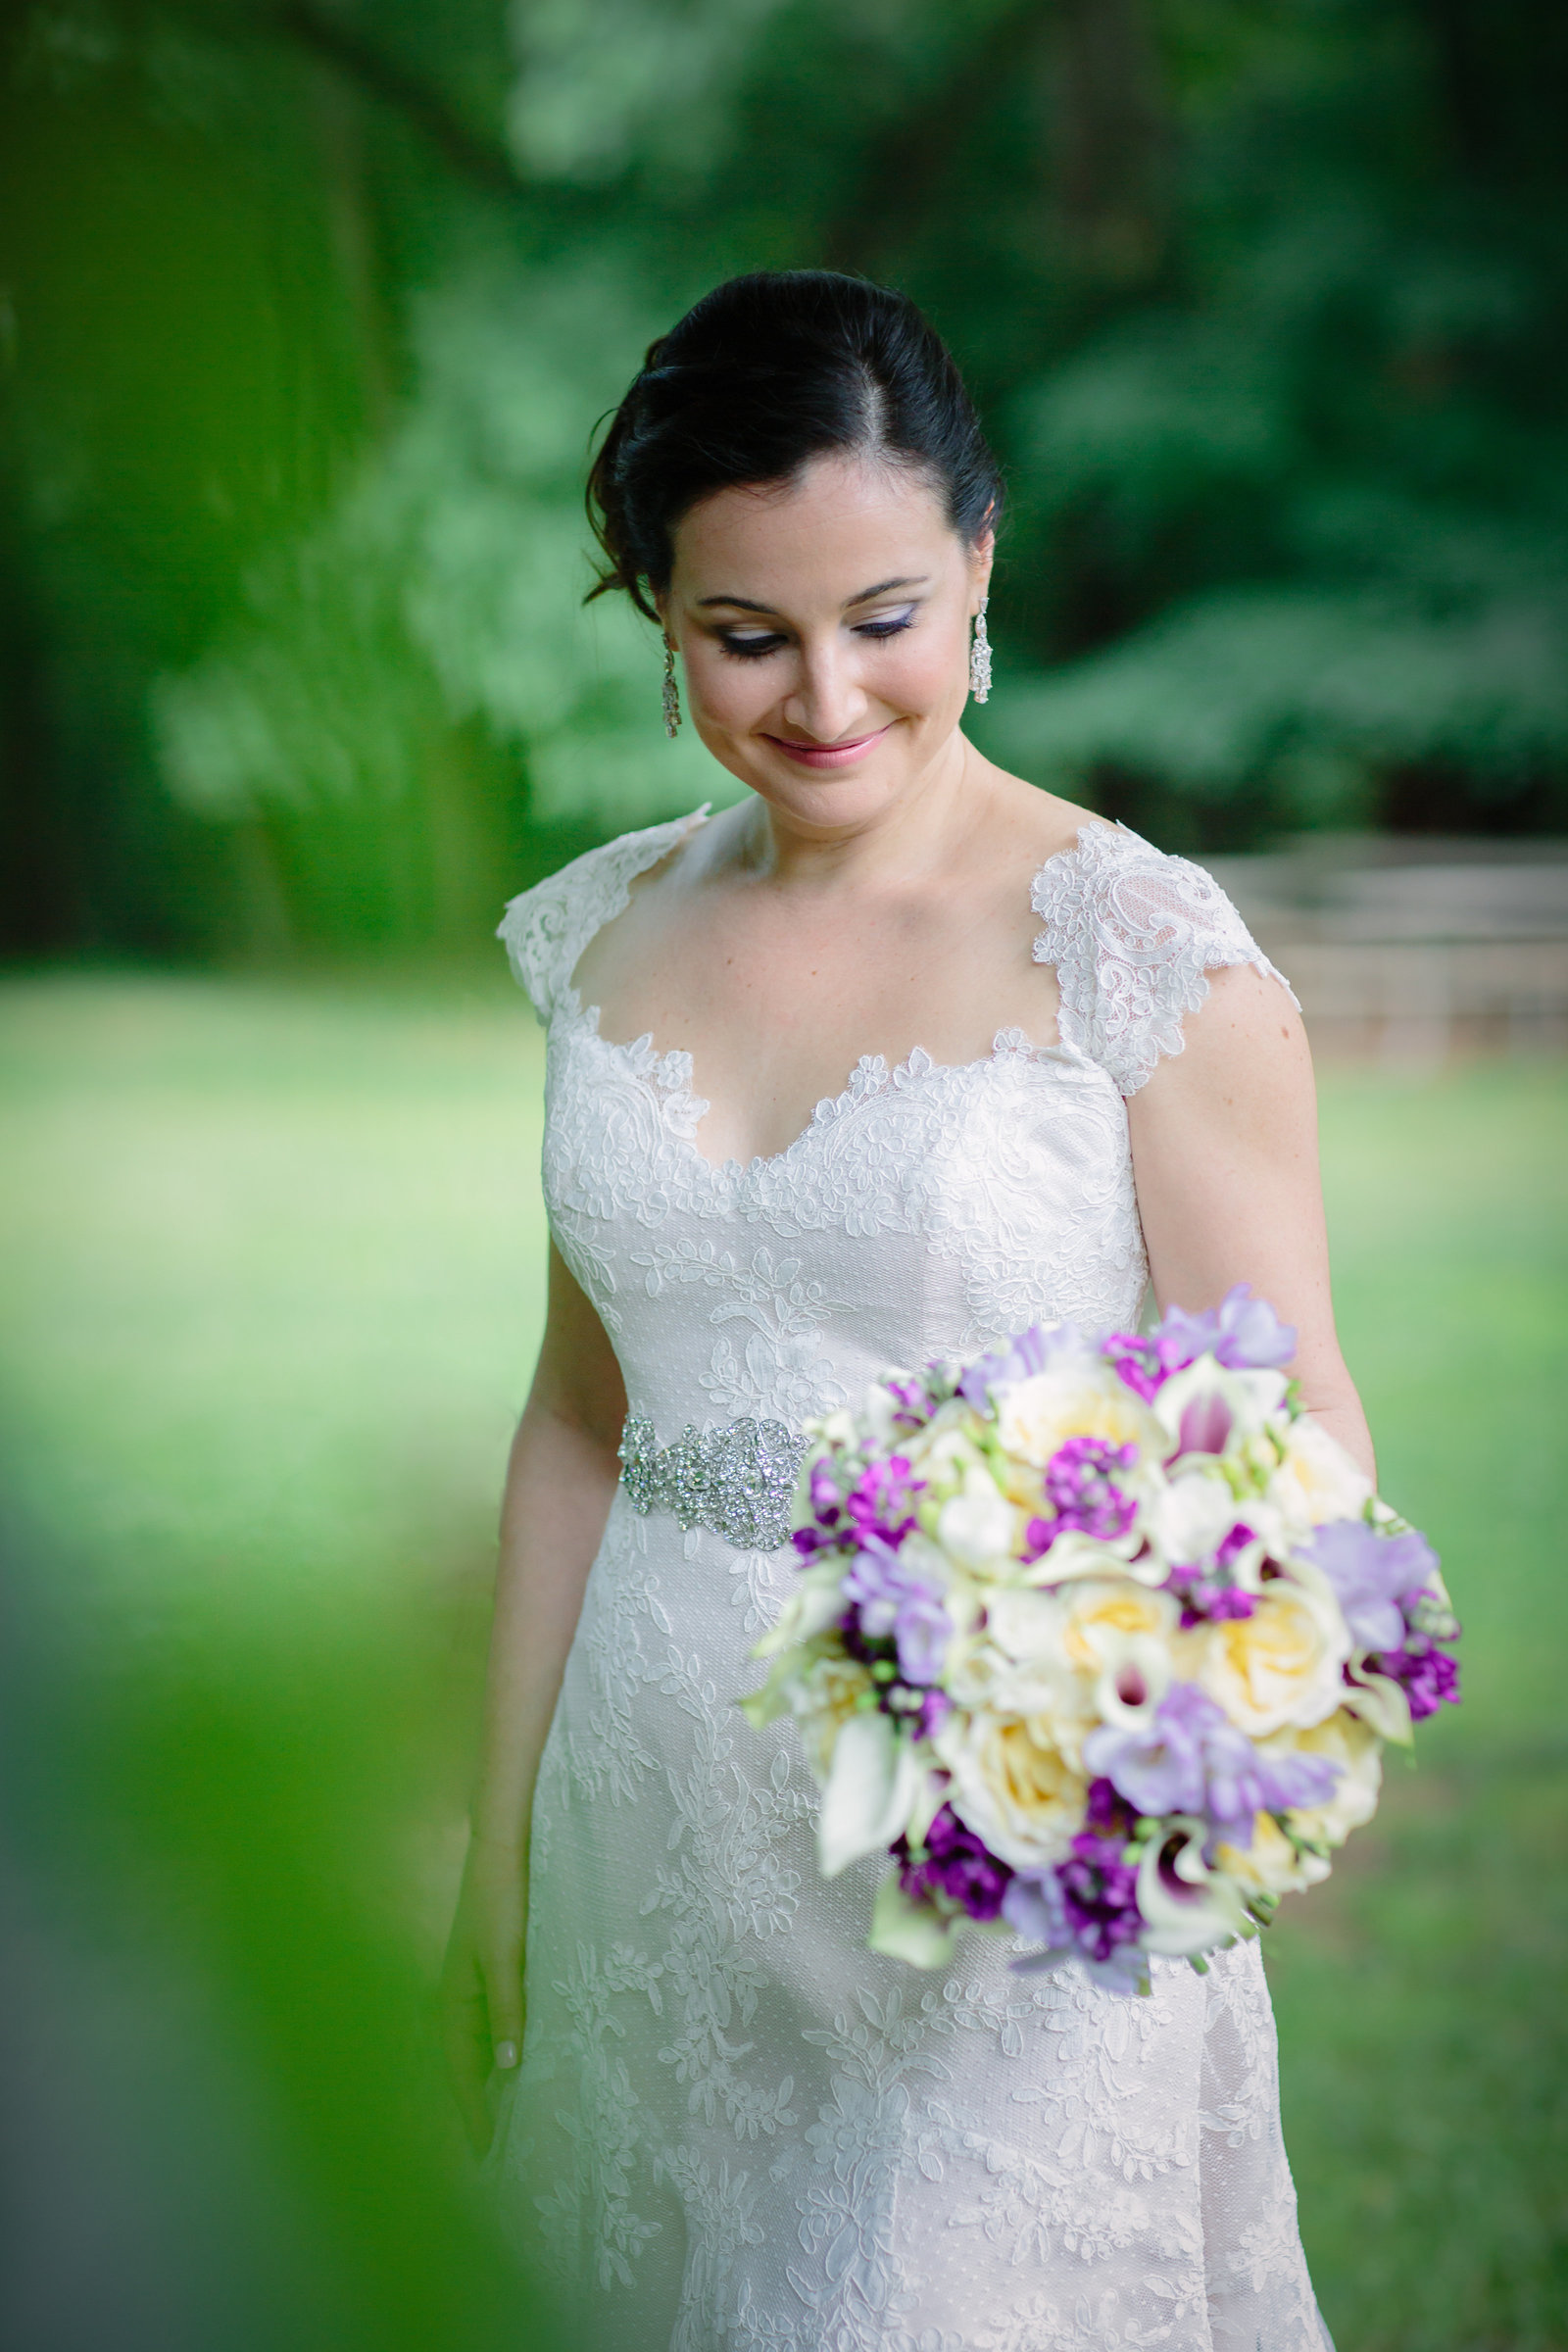 Lace Dress with purple flowers bride portrait